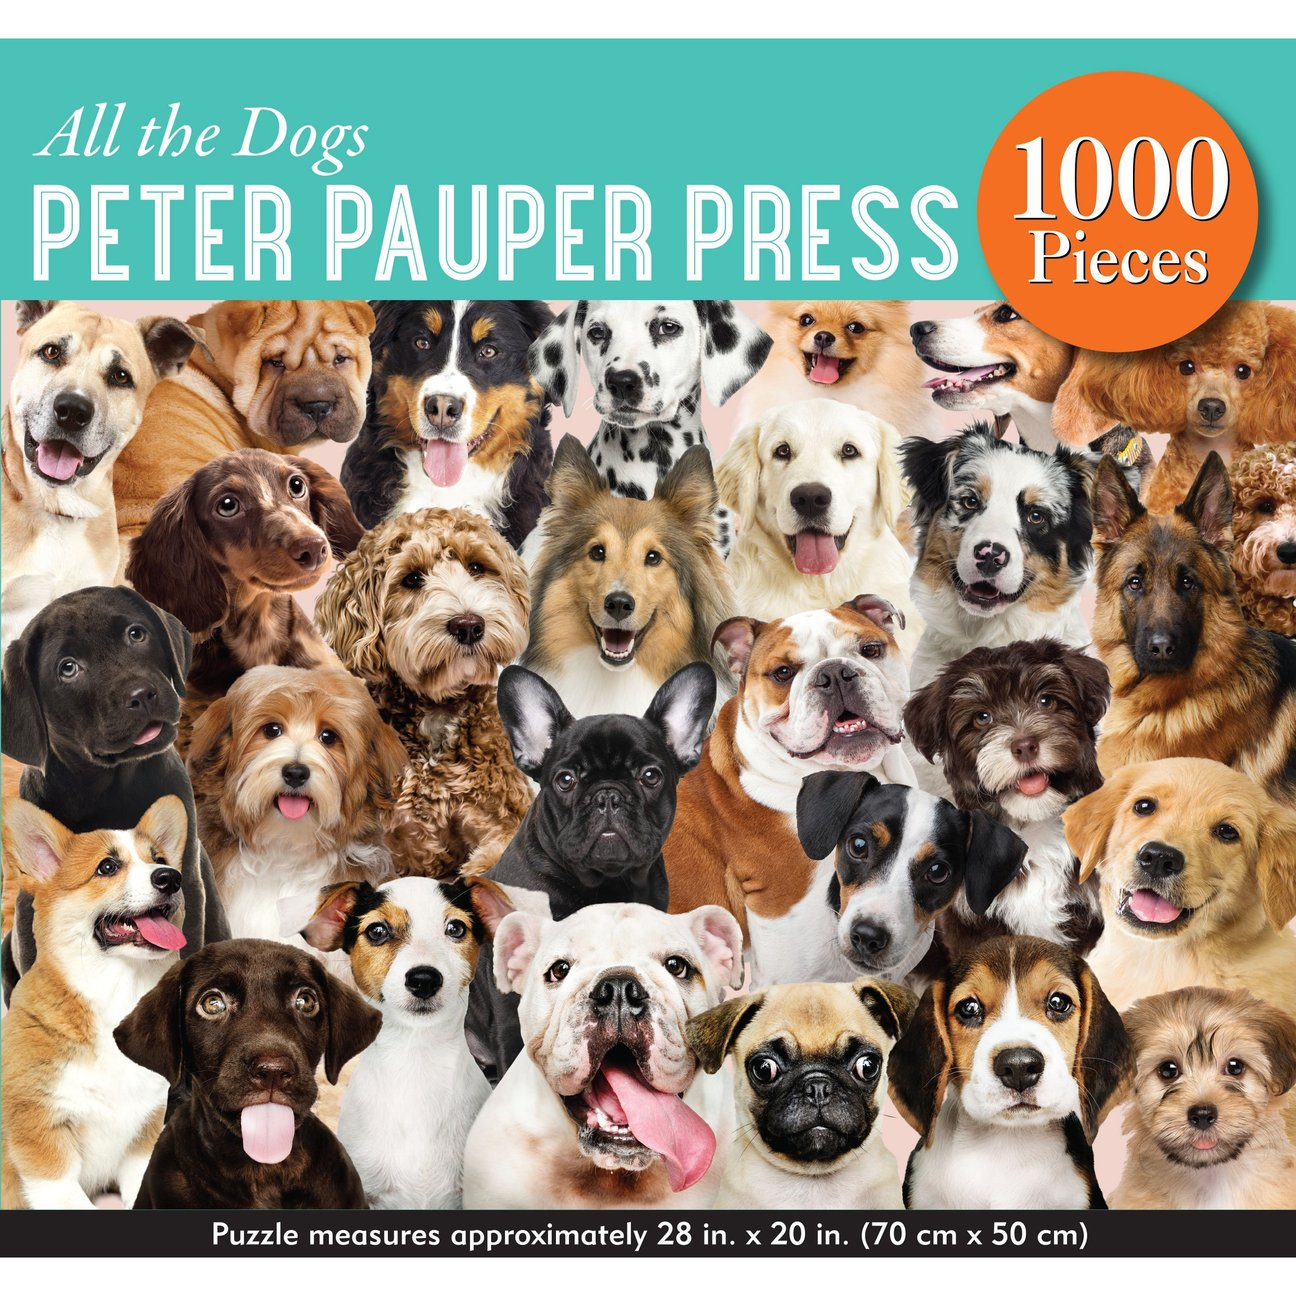 all the dogs Peter pauper press 1000pc